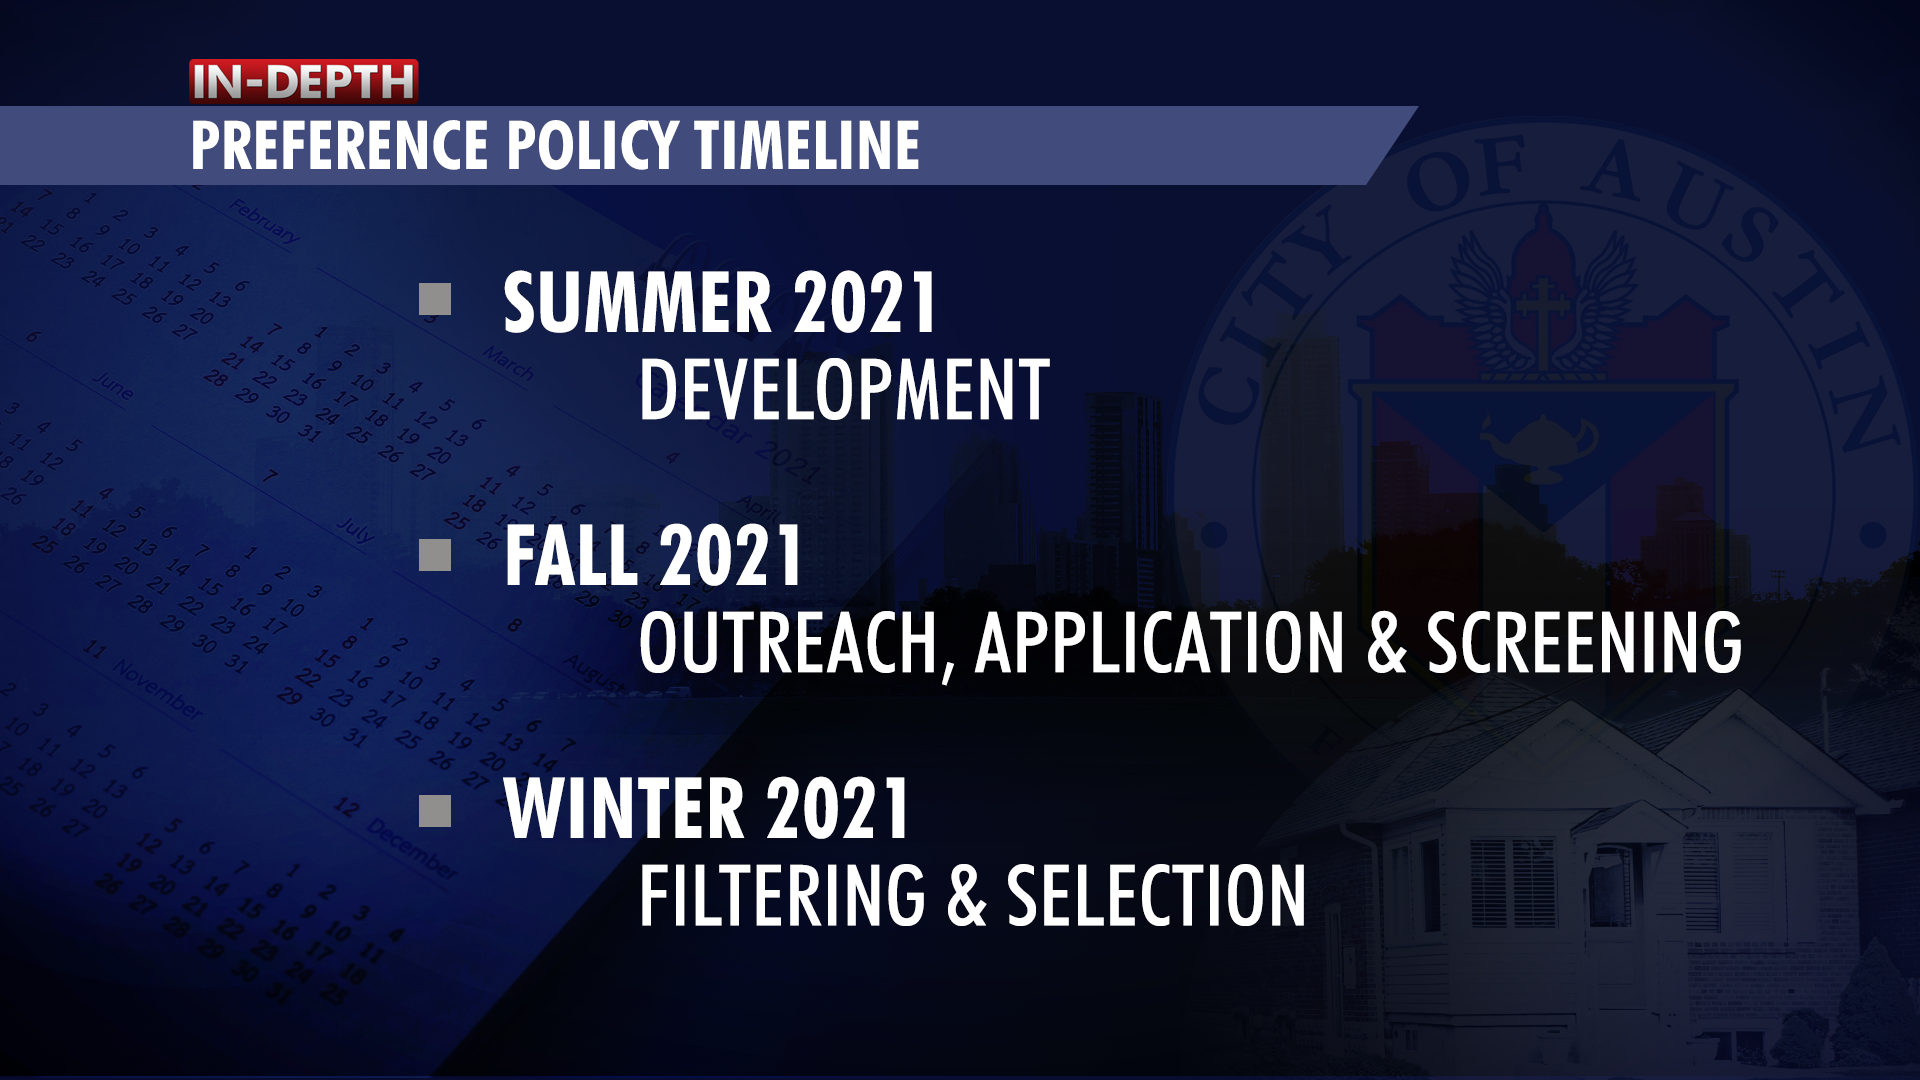 A graphic showing the timeline for the preference policy. Development happens in summer 2021. Outreach, application and screening is in Fall 2021. Filtering and selection happens in winter 2021